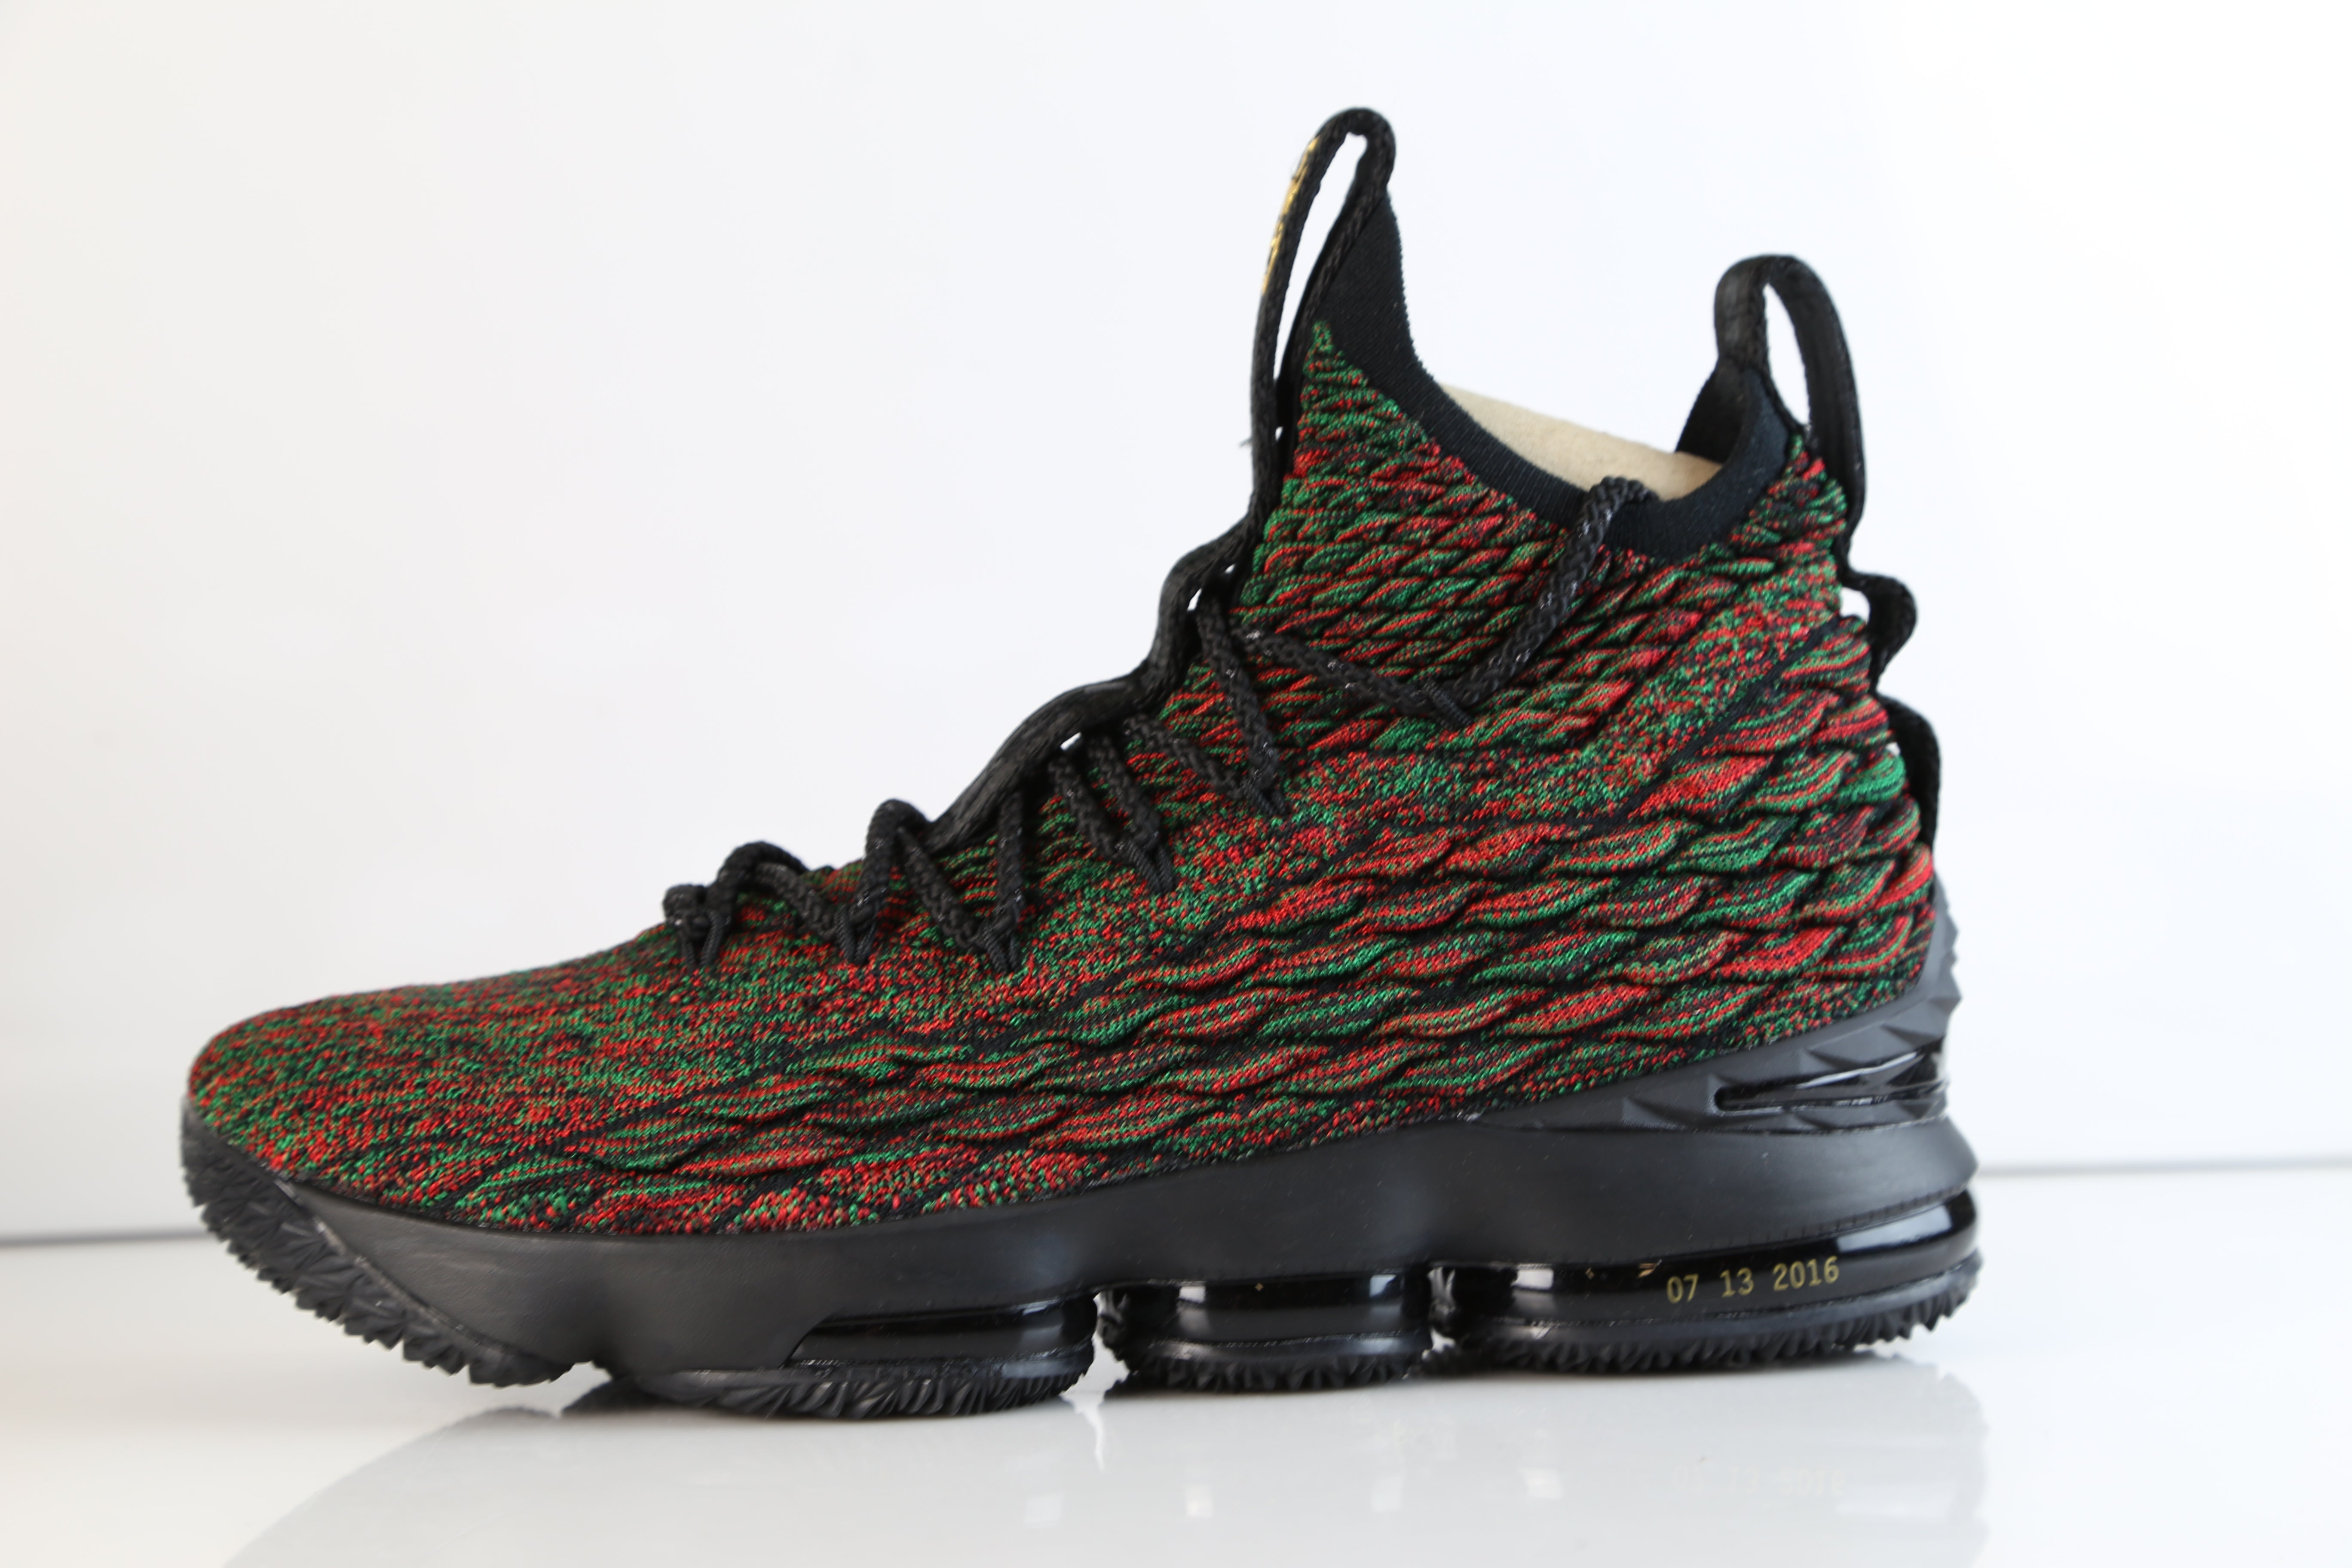 0e7056d31ad8 Nike Lebron XV LMTD BHM Black History Month Multicolor Flyknit 897650-